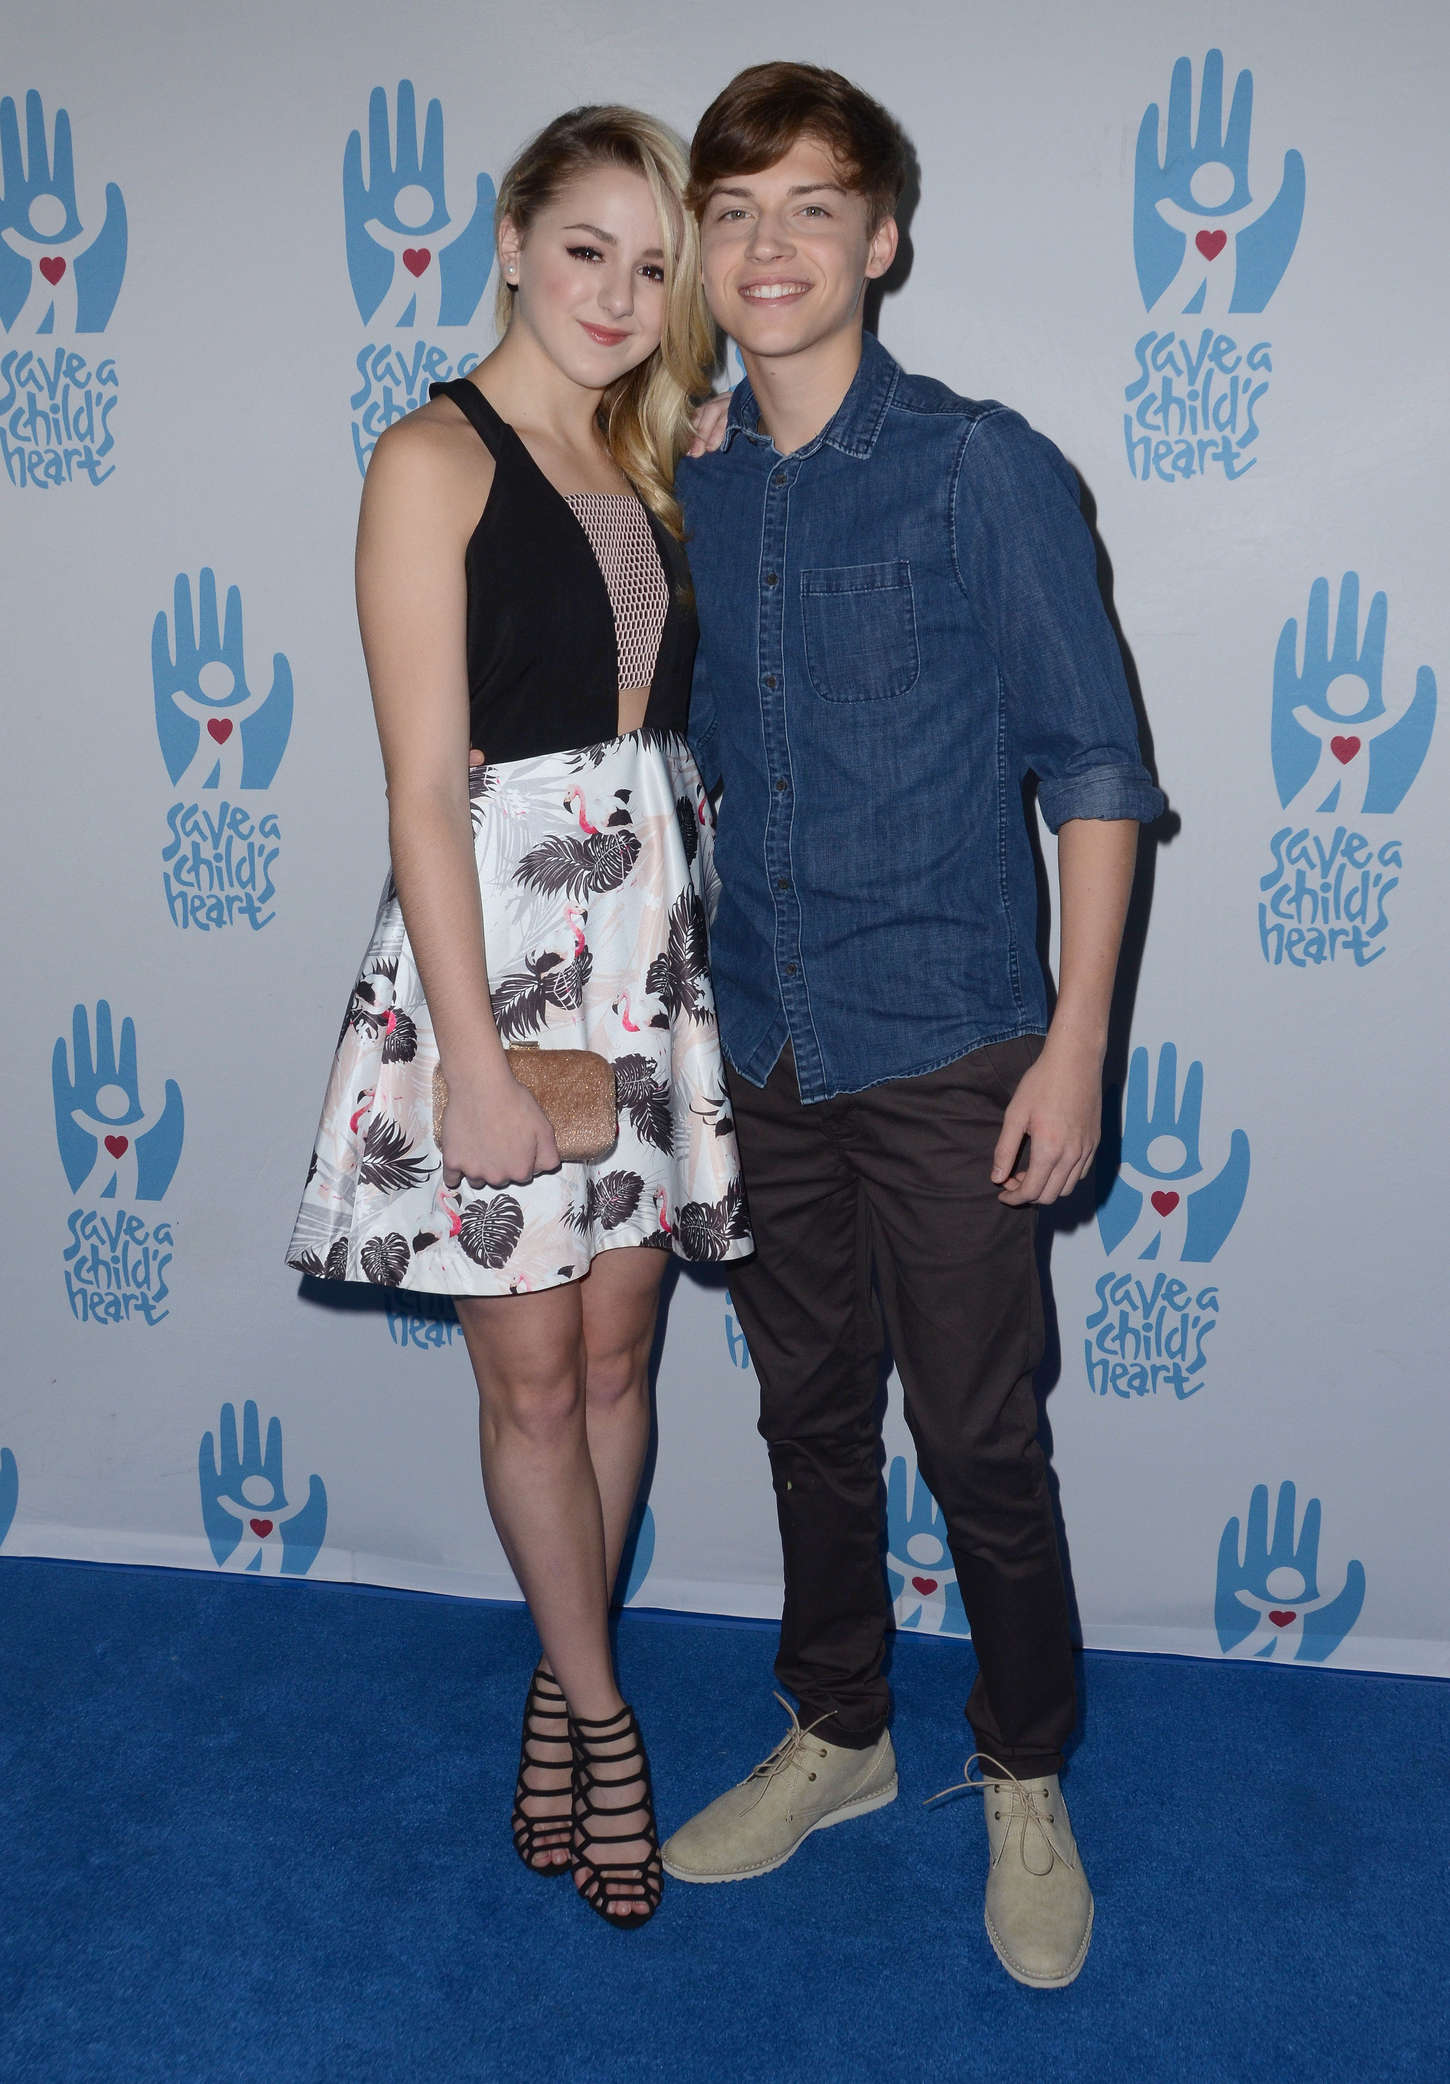 Chloe Lukasiak Annual Save a Childs Heart Gala in Culver City